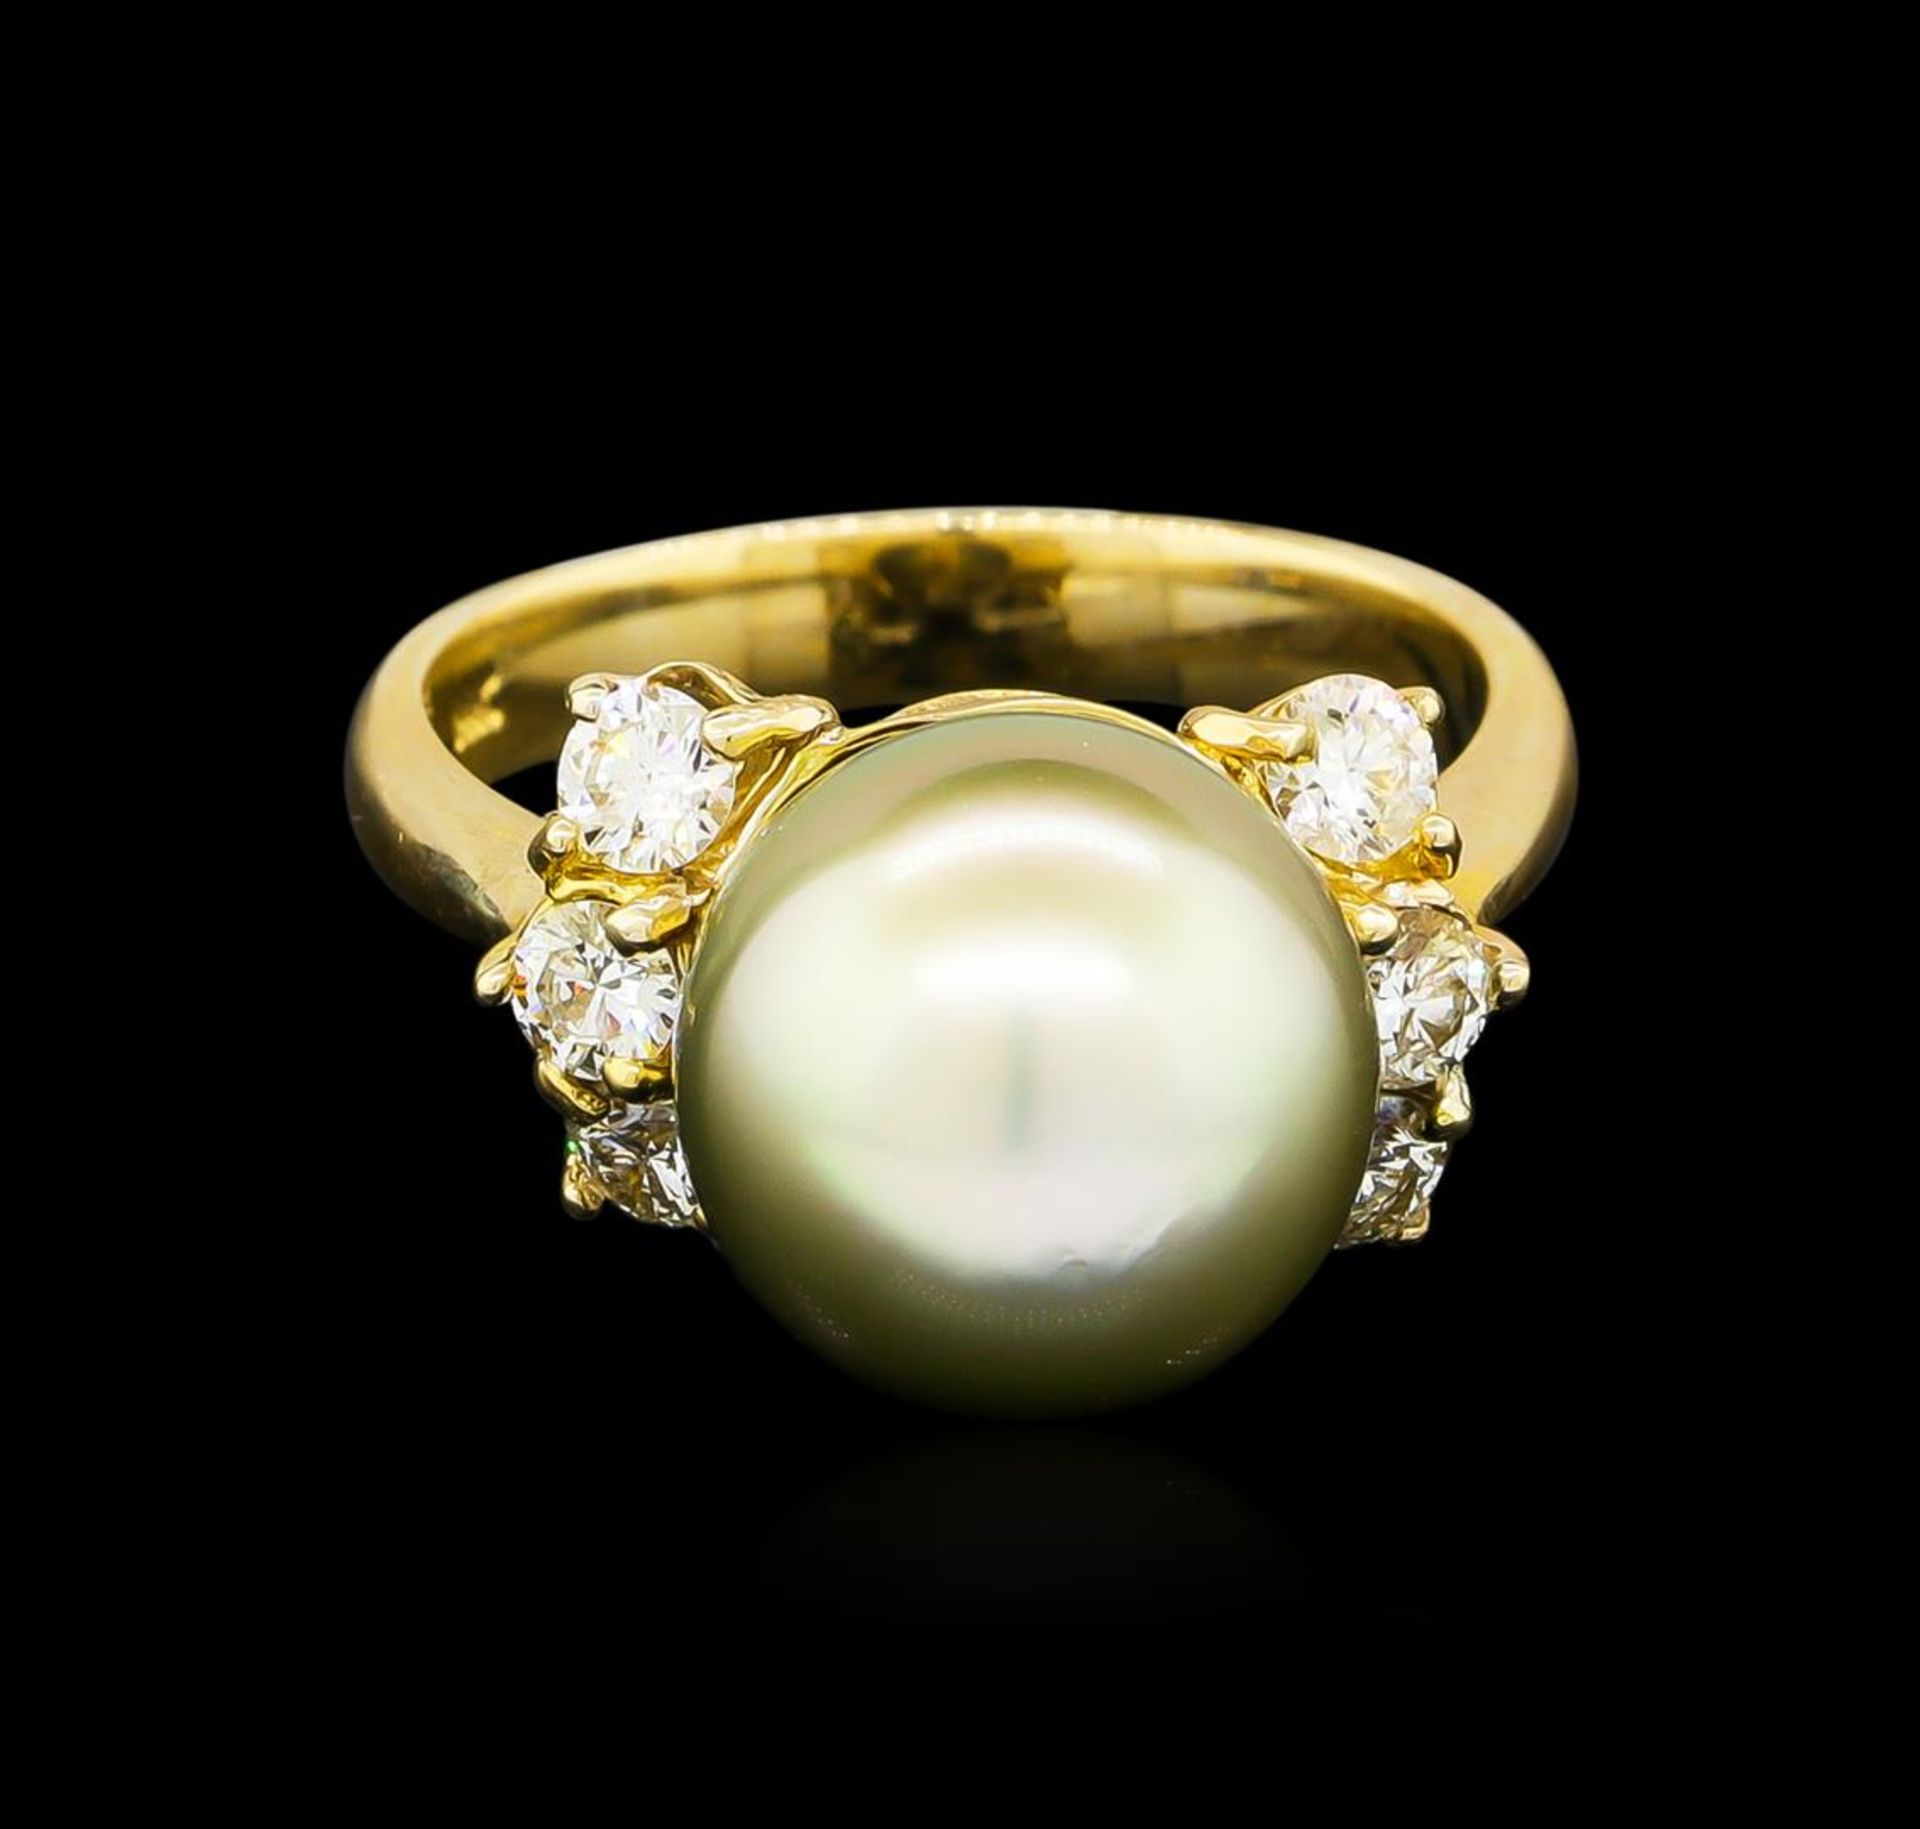 0.66 ctw Pearl and Diamond Ring - 14KT Yellow Gold - Image 2 of 4